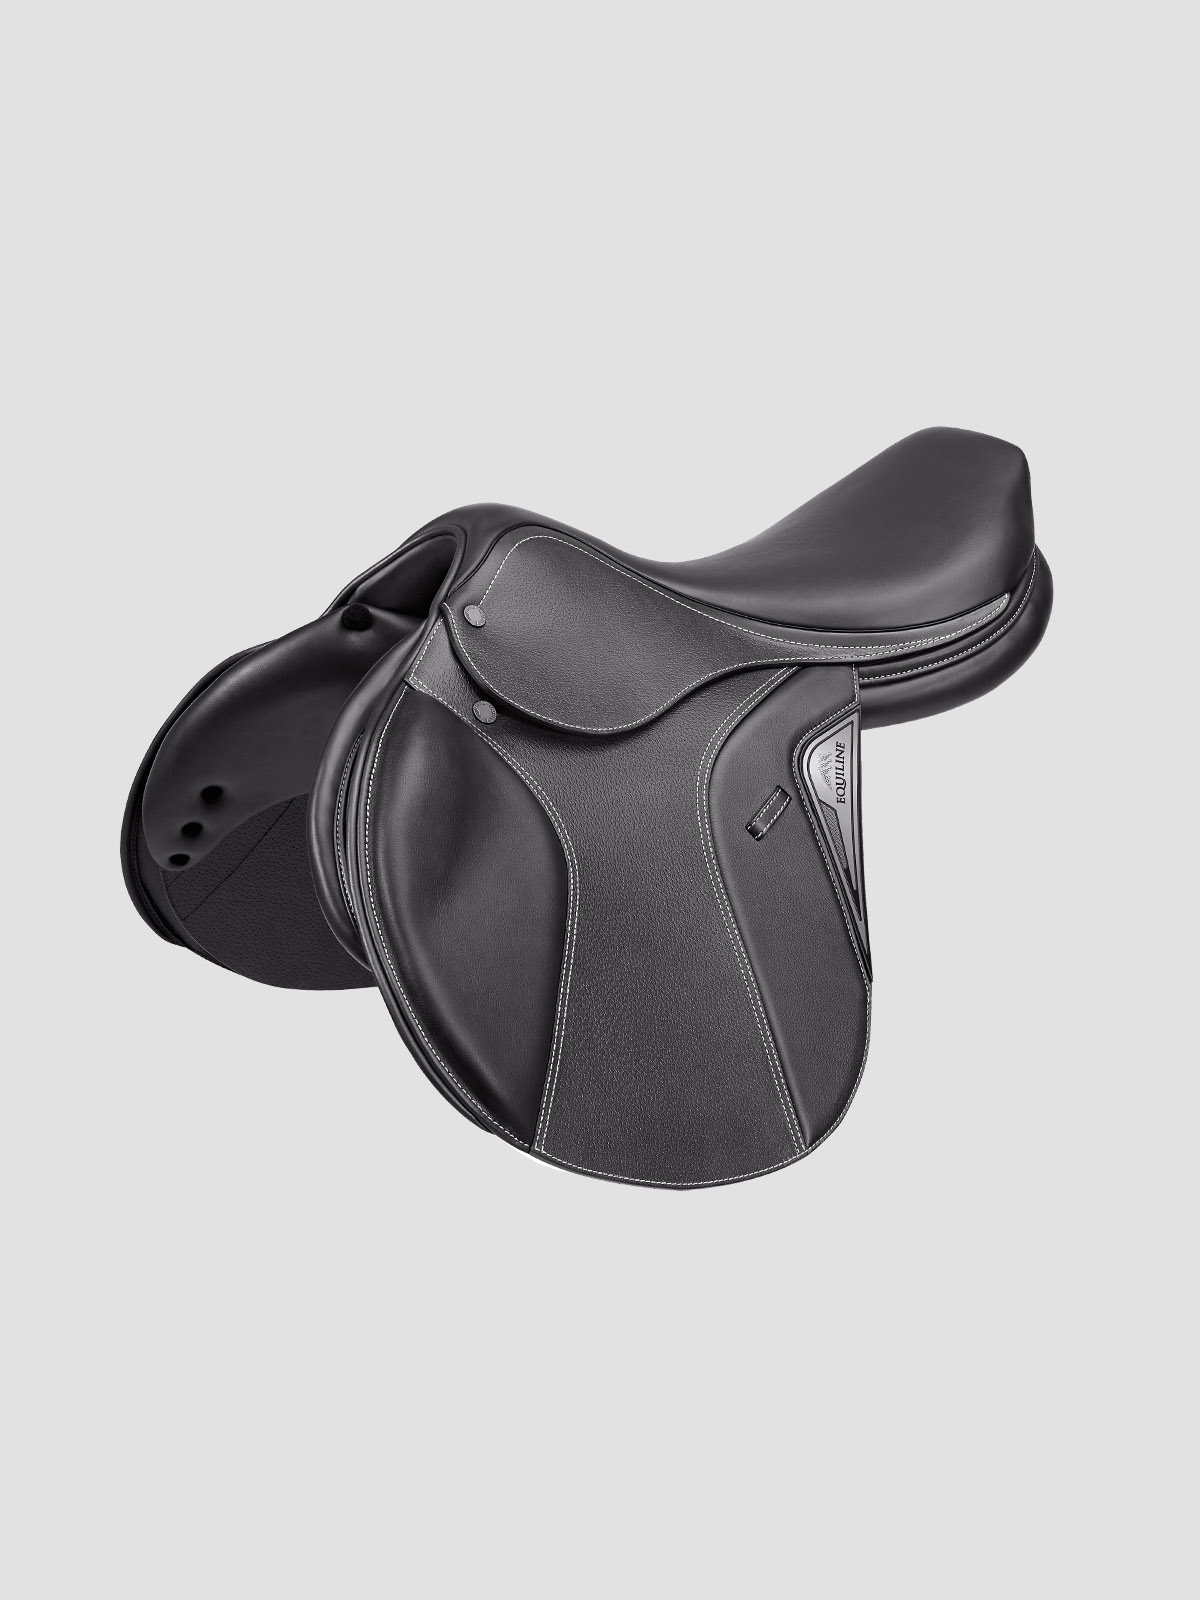 Equiline Marghe Jumping Saddle 3